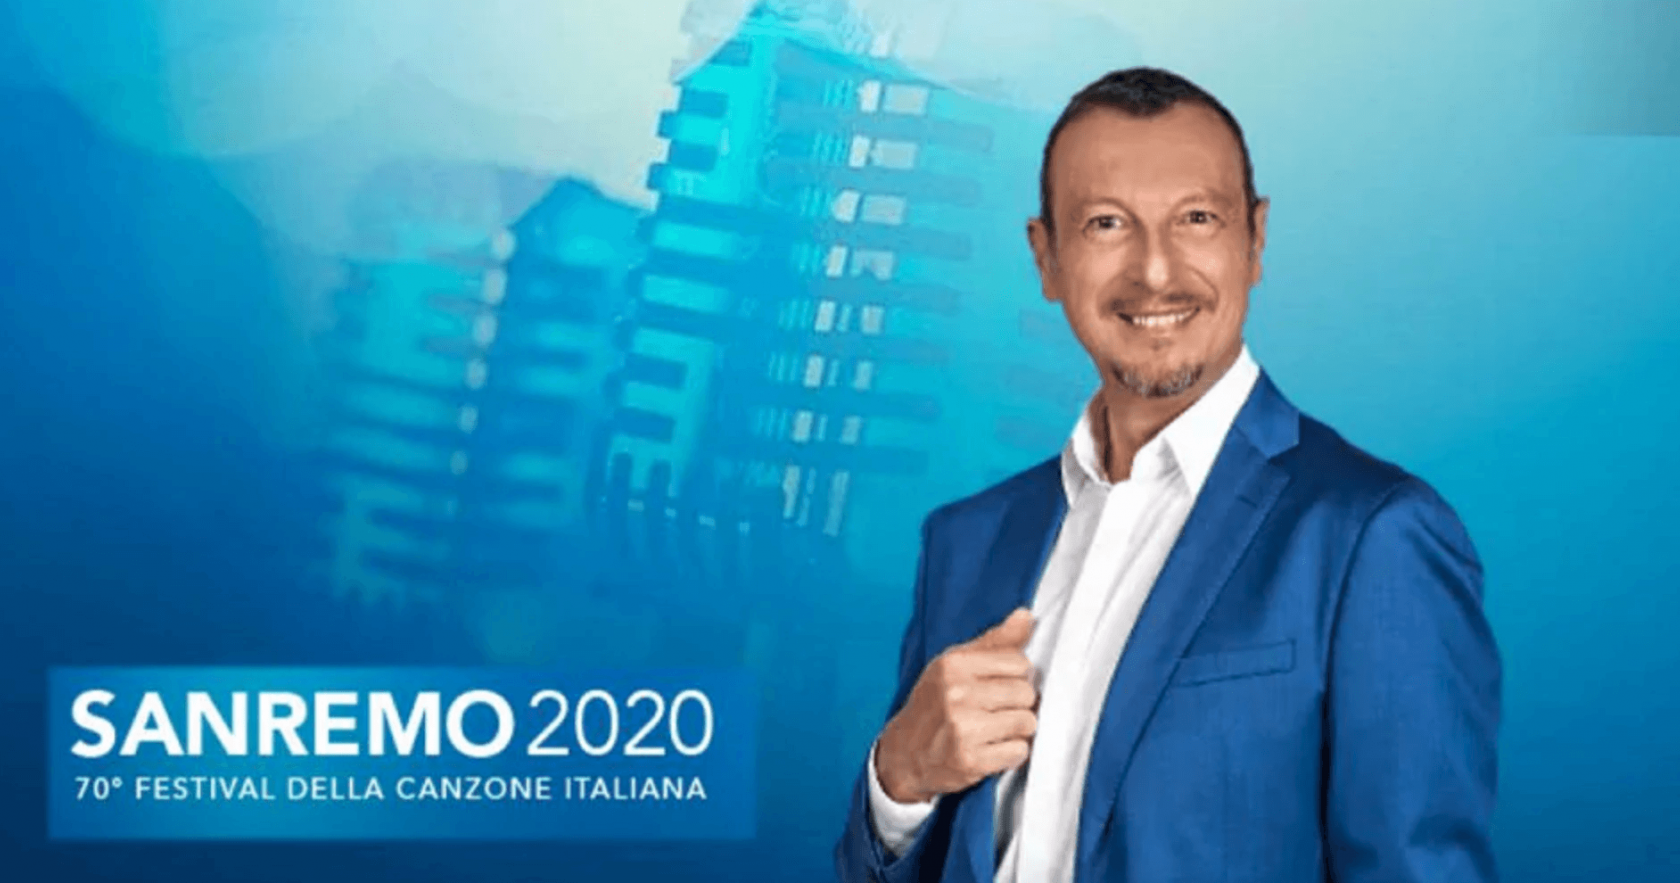 Italy: Sanremo 2020 line up completed with two more acts